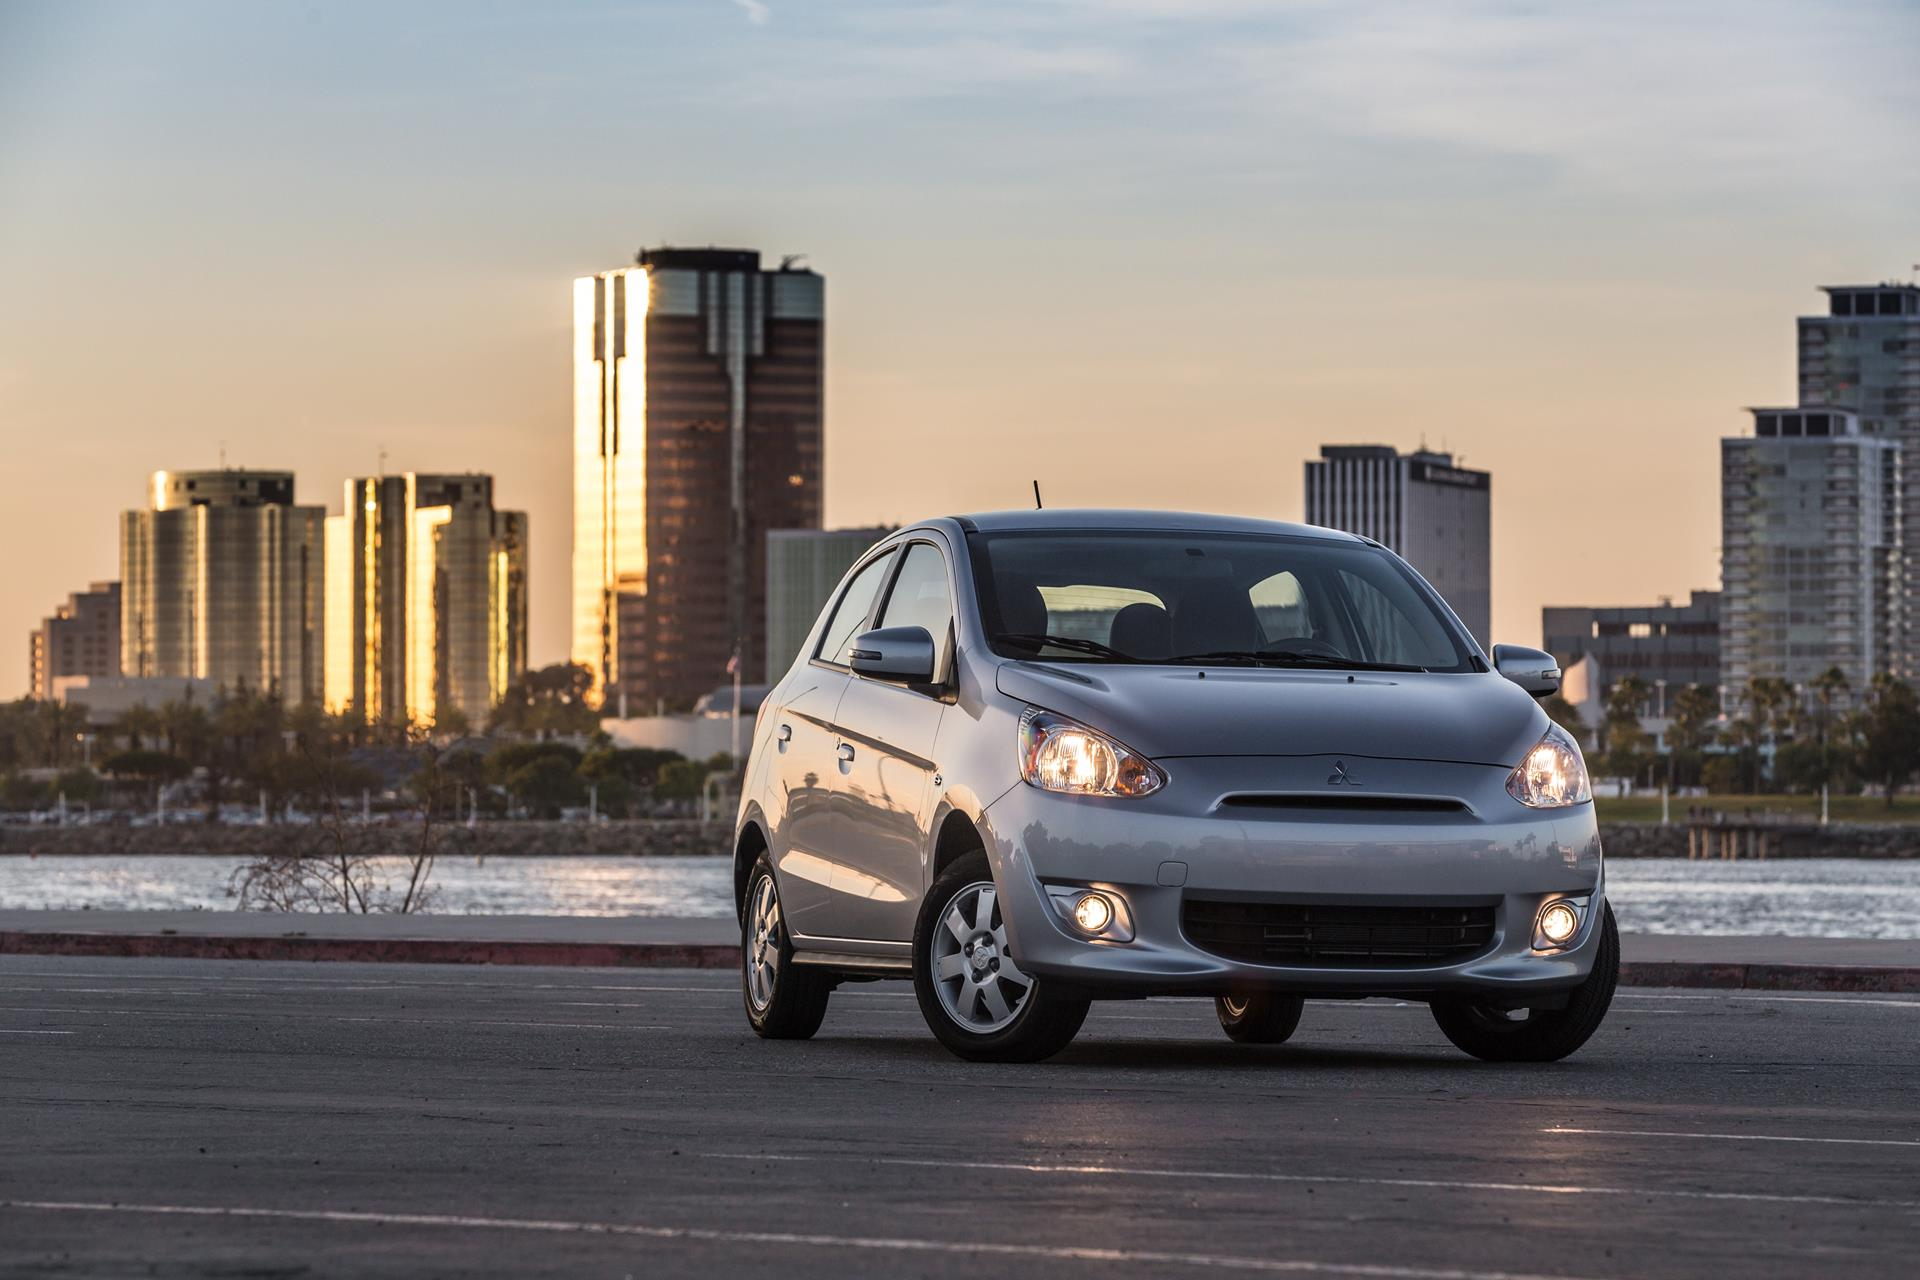 Mitsubishi Mirage Rockford Fosgate Edition pictures and wallpaper